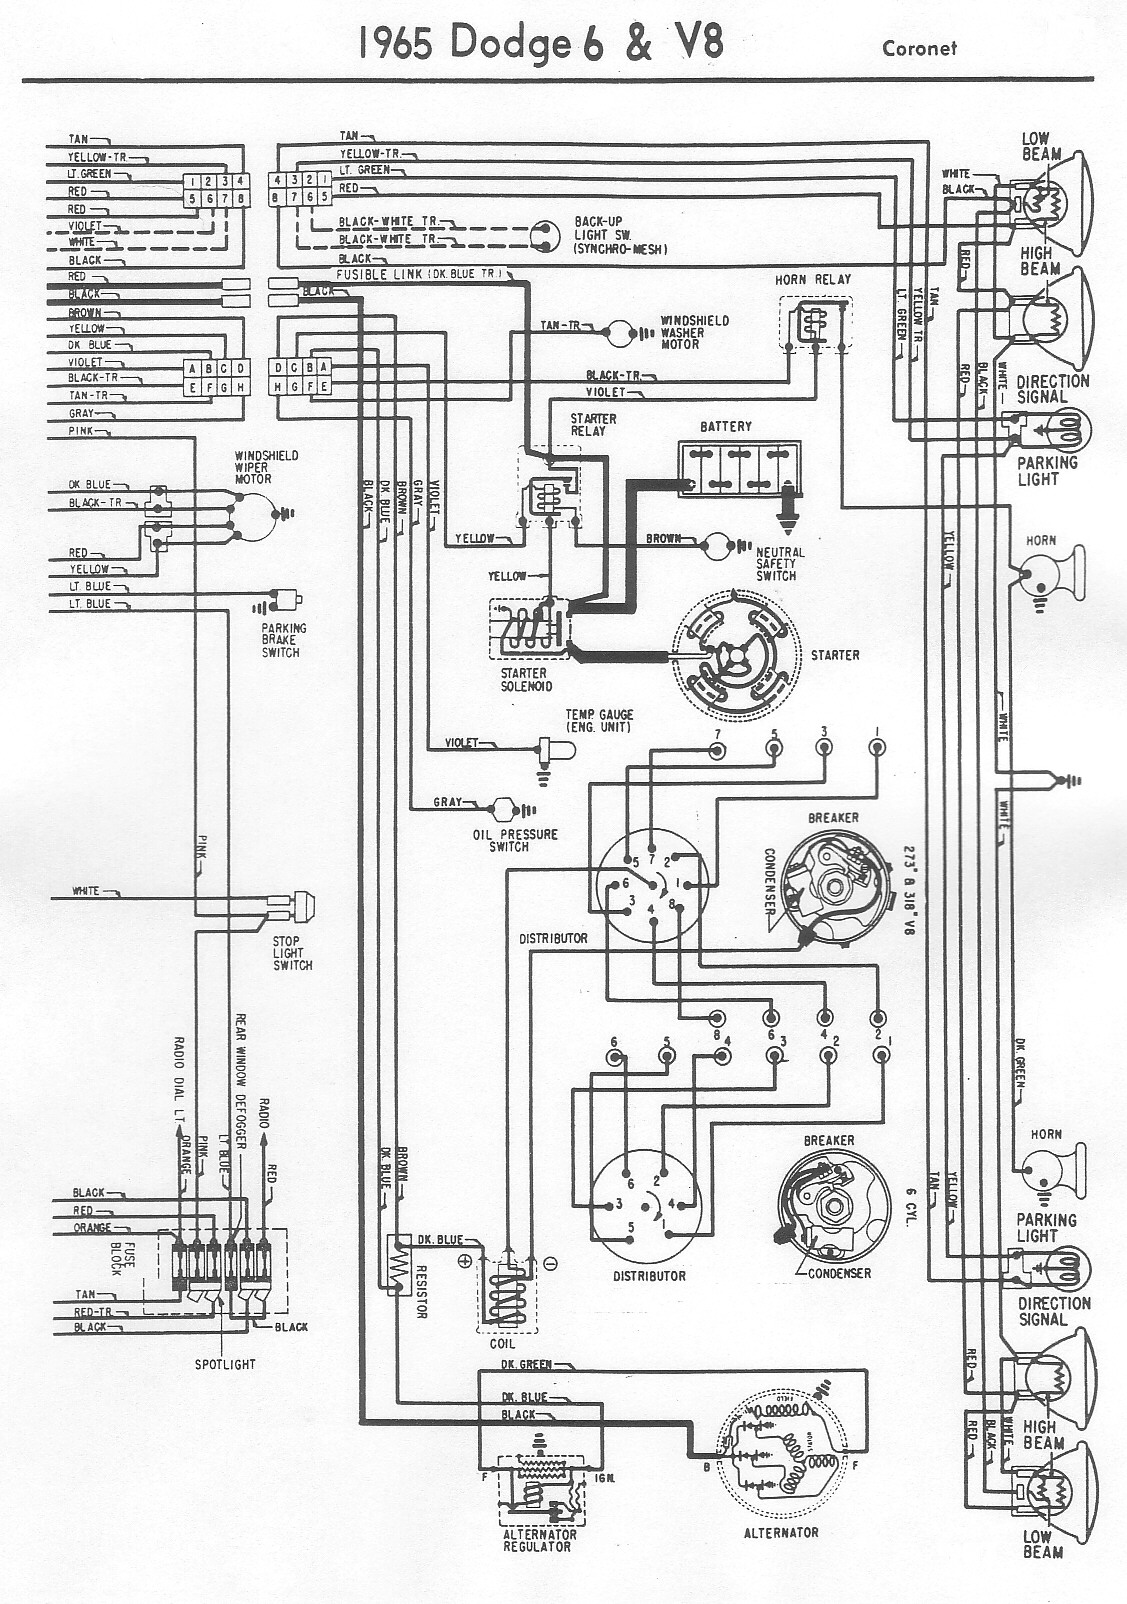 1969 coronet engine wiring diagram